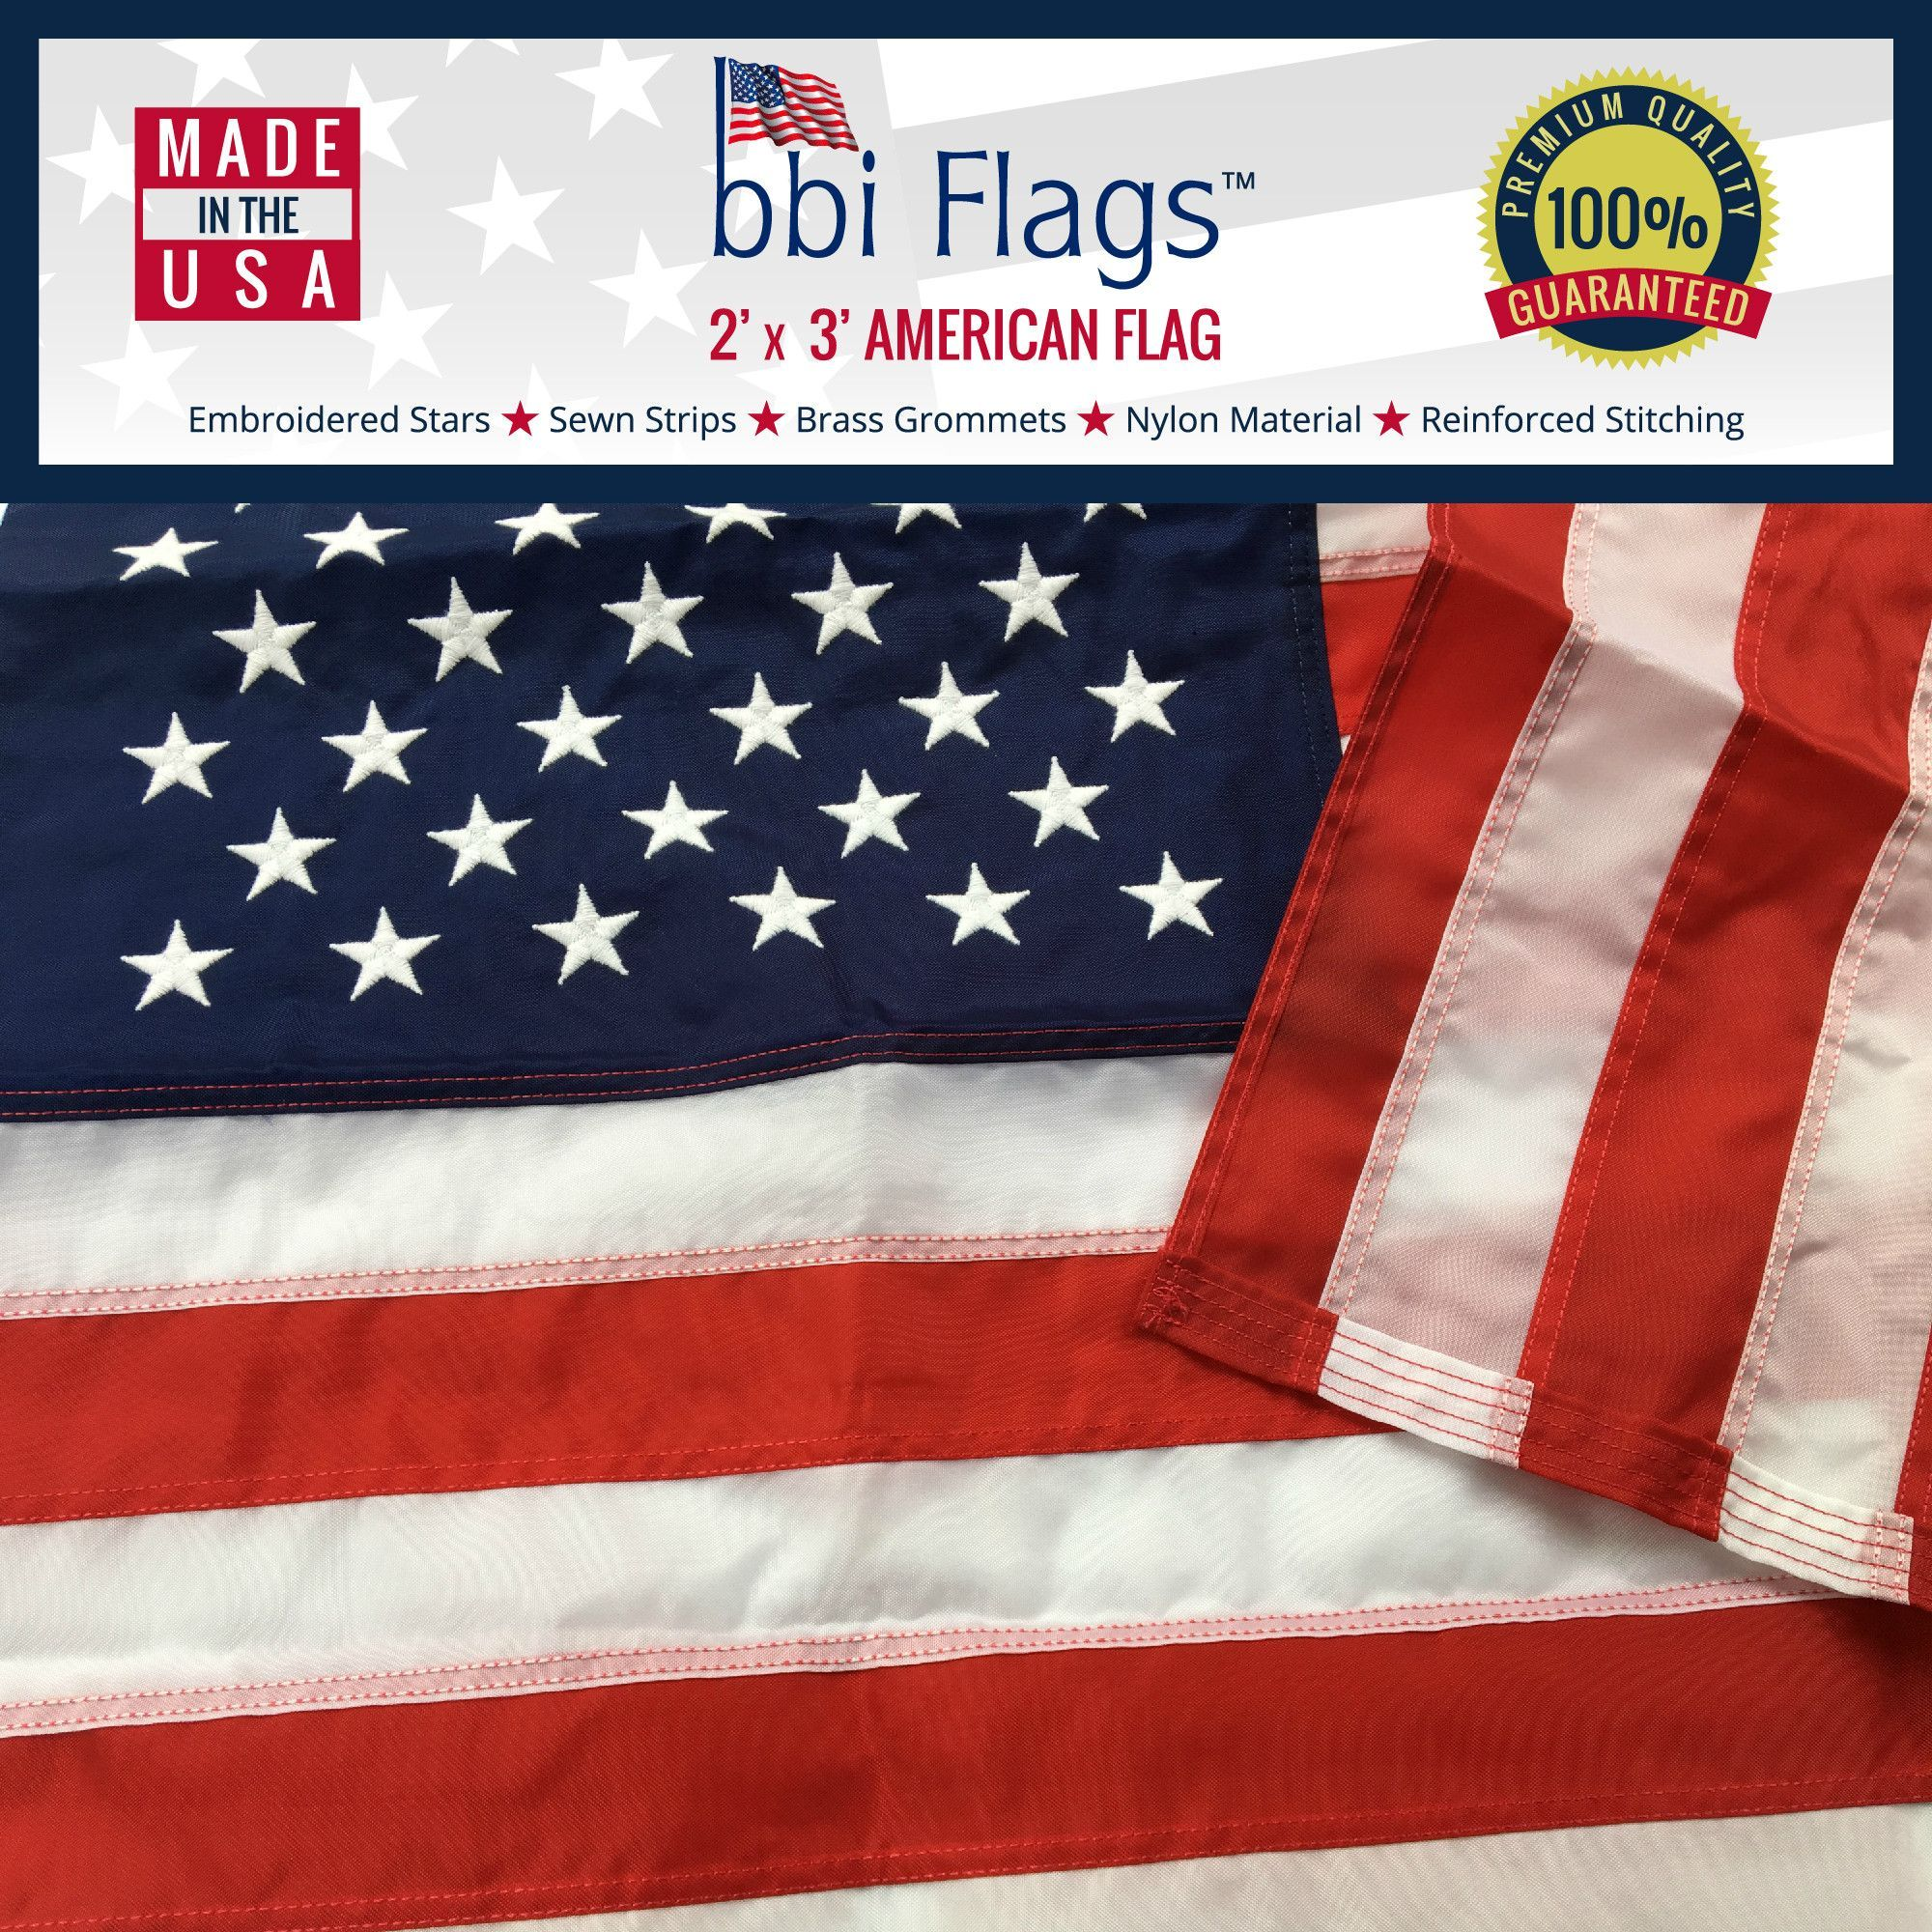 American Flag - Uses Grommets - Multiple Sizes - Best Quality Nylon with Embroidered Stars and Sewn Stripes